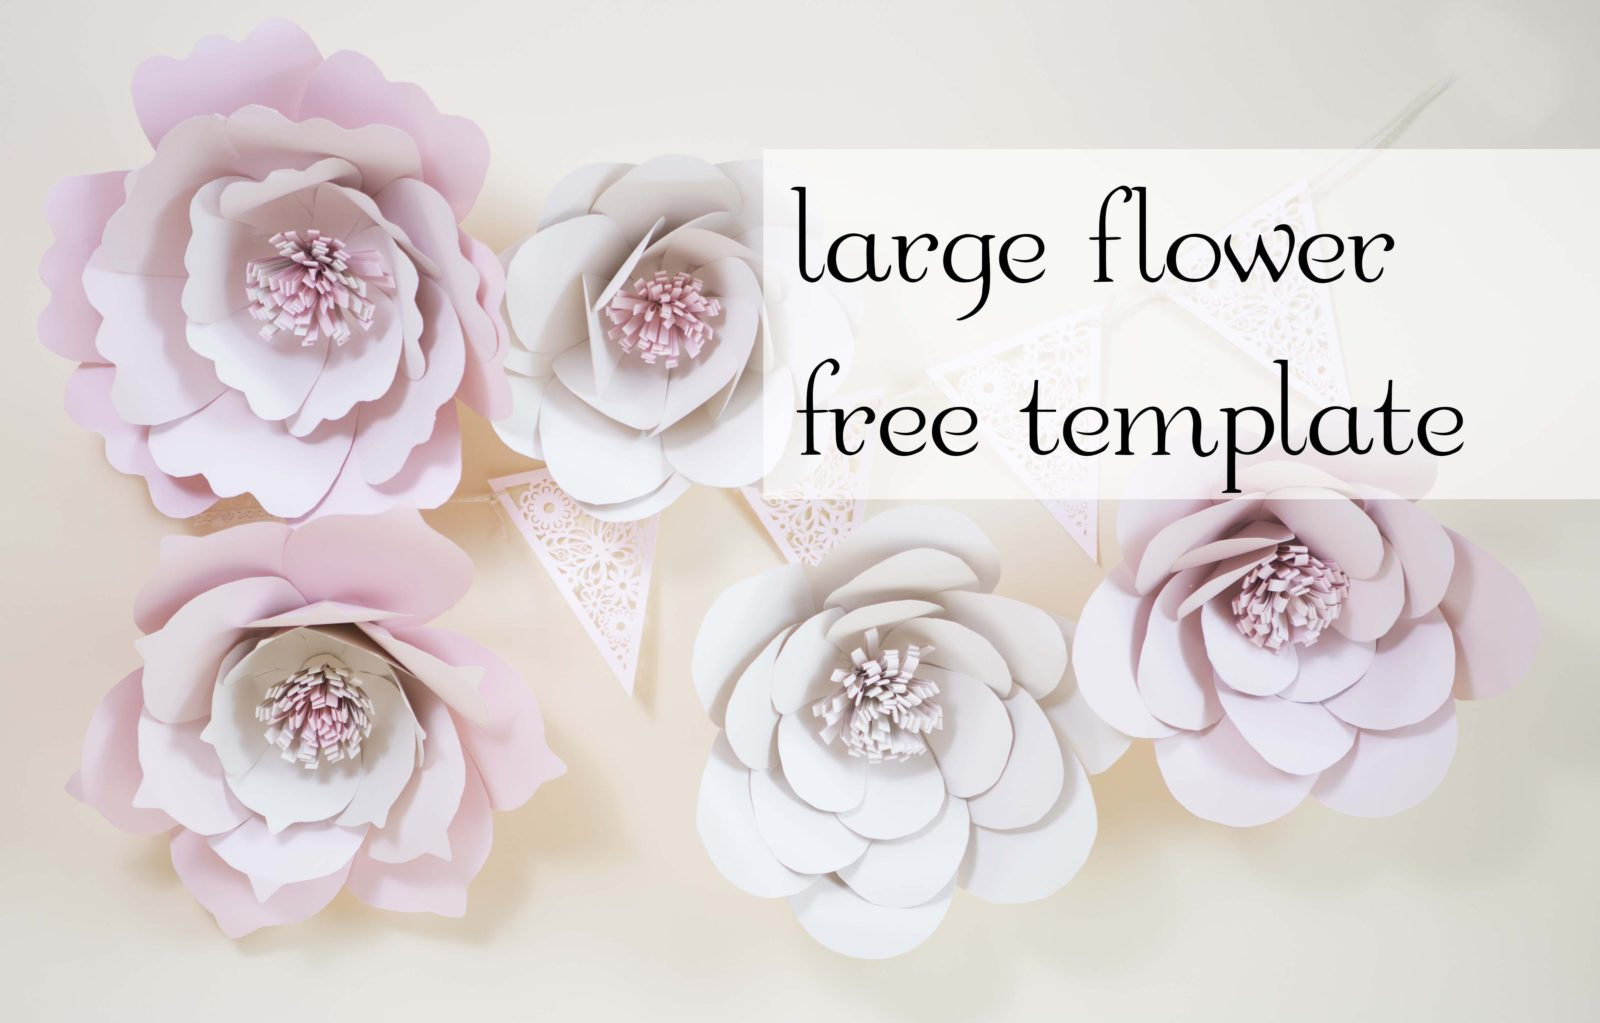 Giant paper flowers free template for Big flower paper template